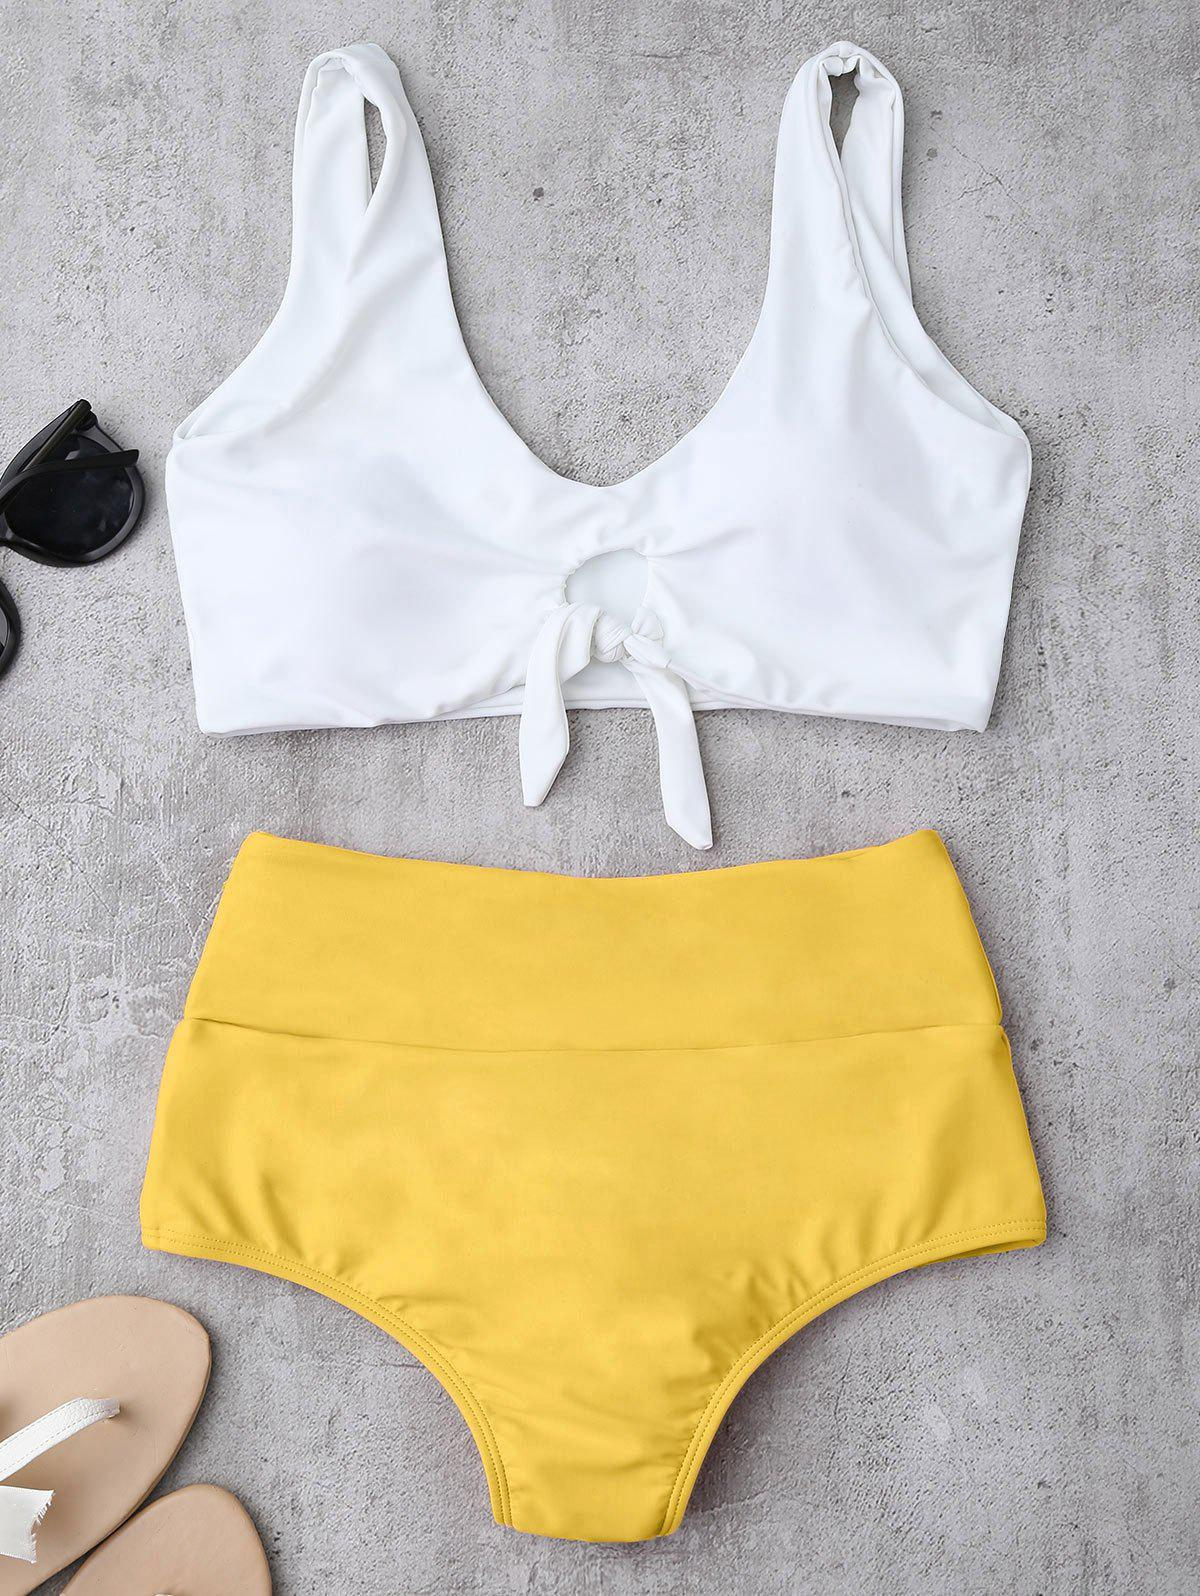 High Waisted Ruched Bikini SetWOMEN<br><br>Size: M; Color: YELLOW; Swimwear Type: Bikini; Gender: For Women; Material: Chinlon,Spandex; Bra Style: Padded; Support Type: Wire Free; Neckline: Straps; Pattern Type: Others; Waist: High Waisted; Elasticity: Elastic; Weight: 0.2200kg; Package Contents: 1 x Top  1 x Briefs;